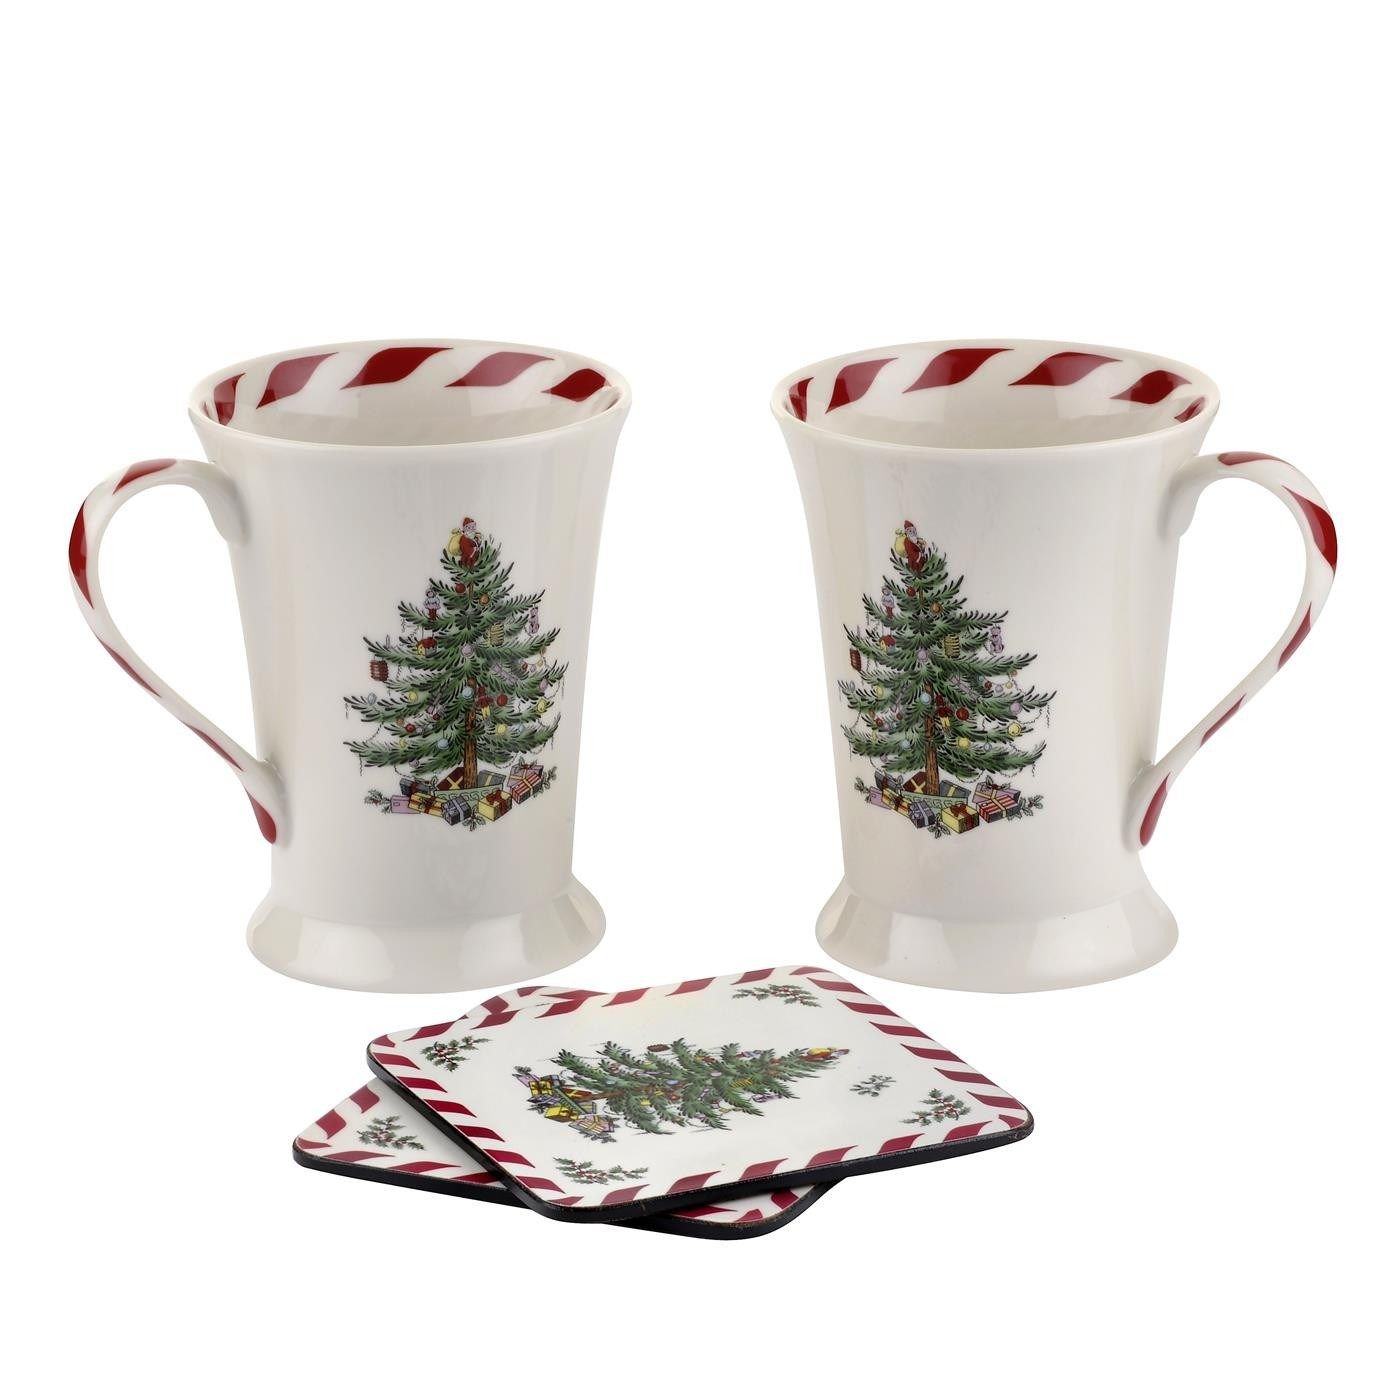 Spode 2011828435 Christmas Tree Pimpernel Peppermint Set